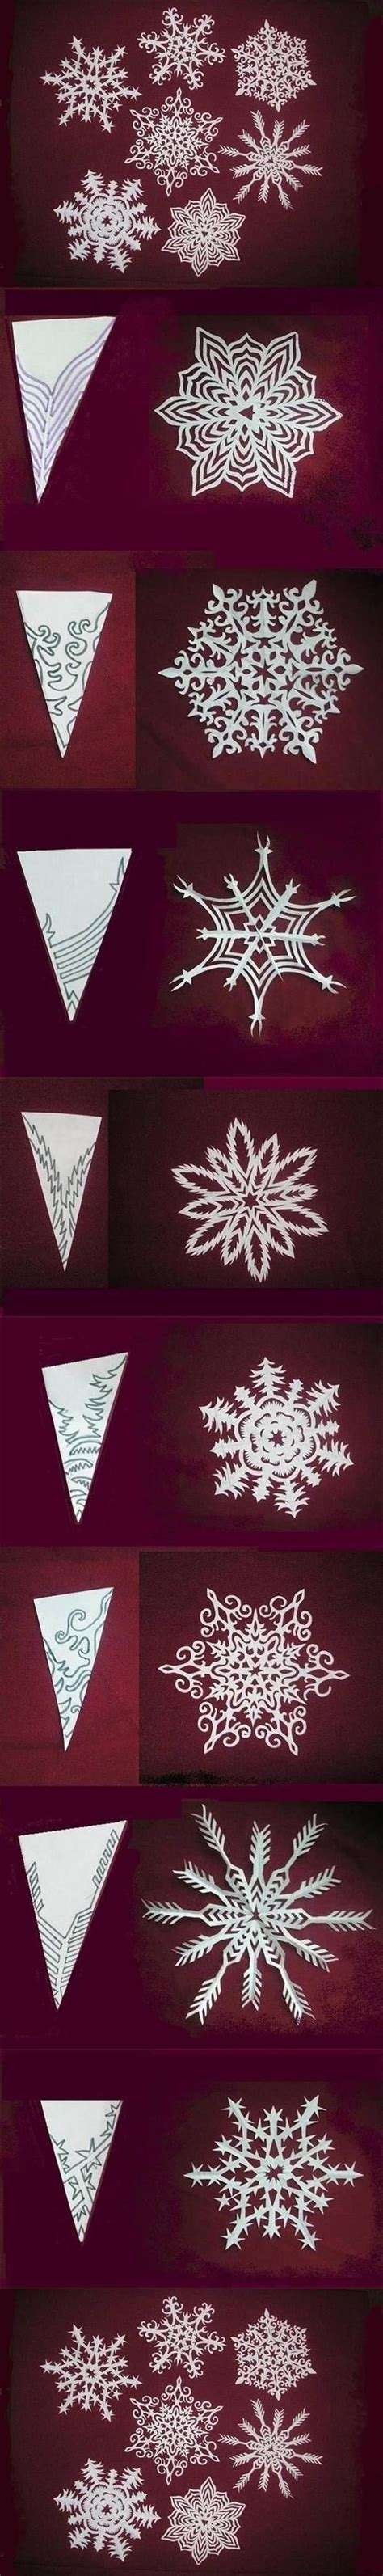 How To Make Paper Snowflakes Patterns - how to make paper snowflakes pictures photos and images